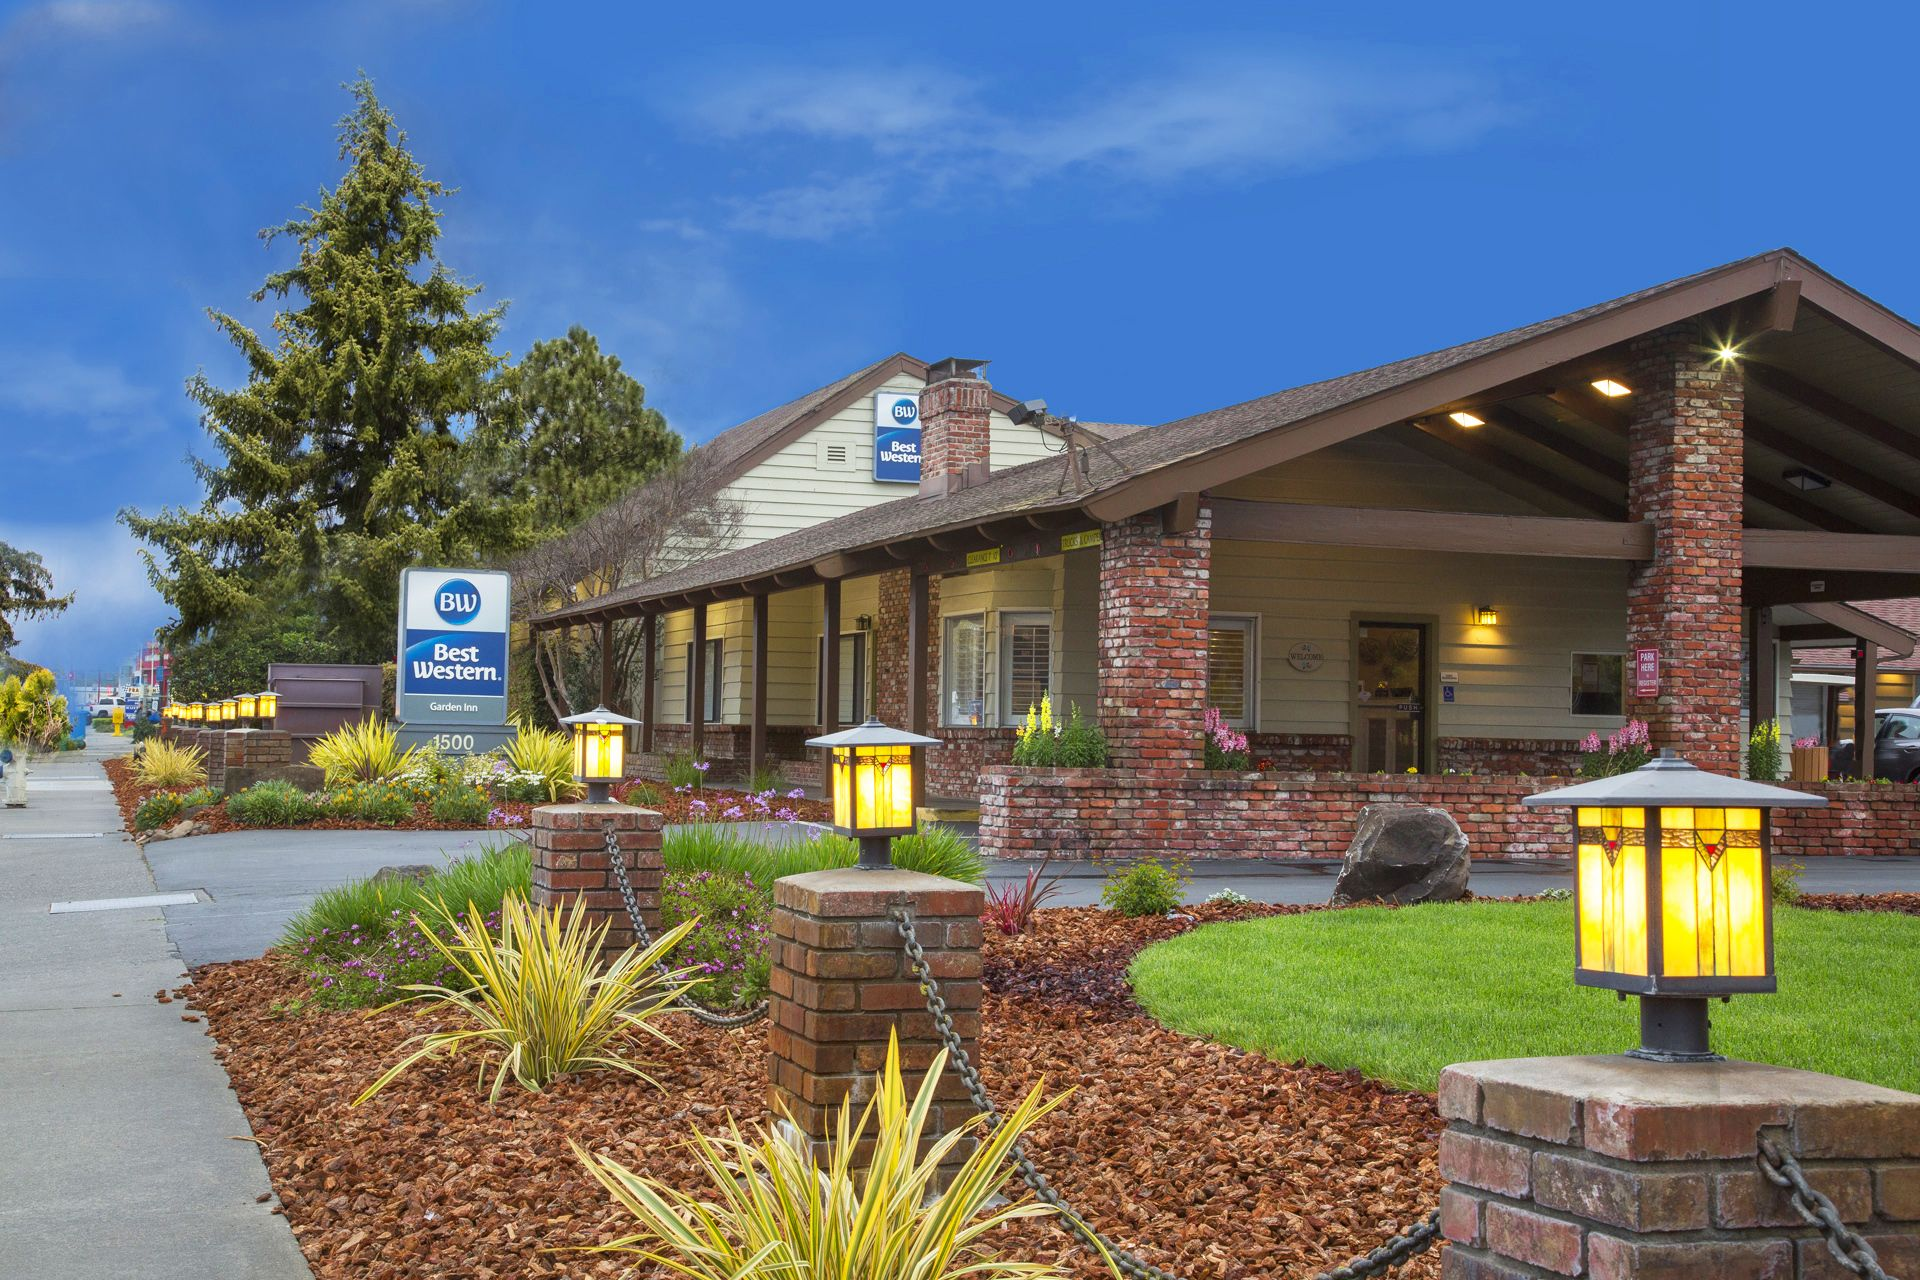 Best Western Garden Inn Design Inspirations